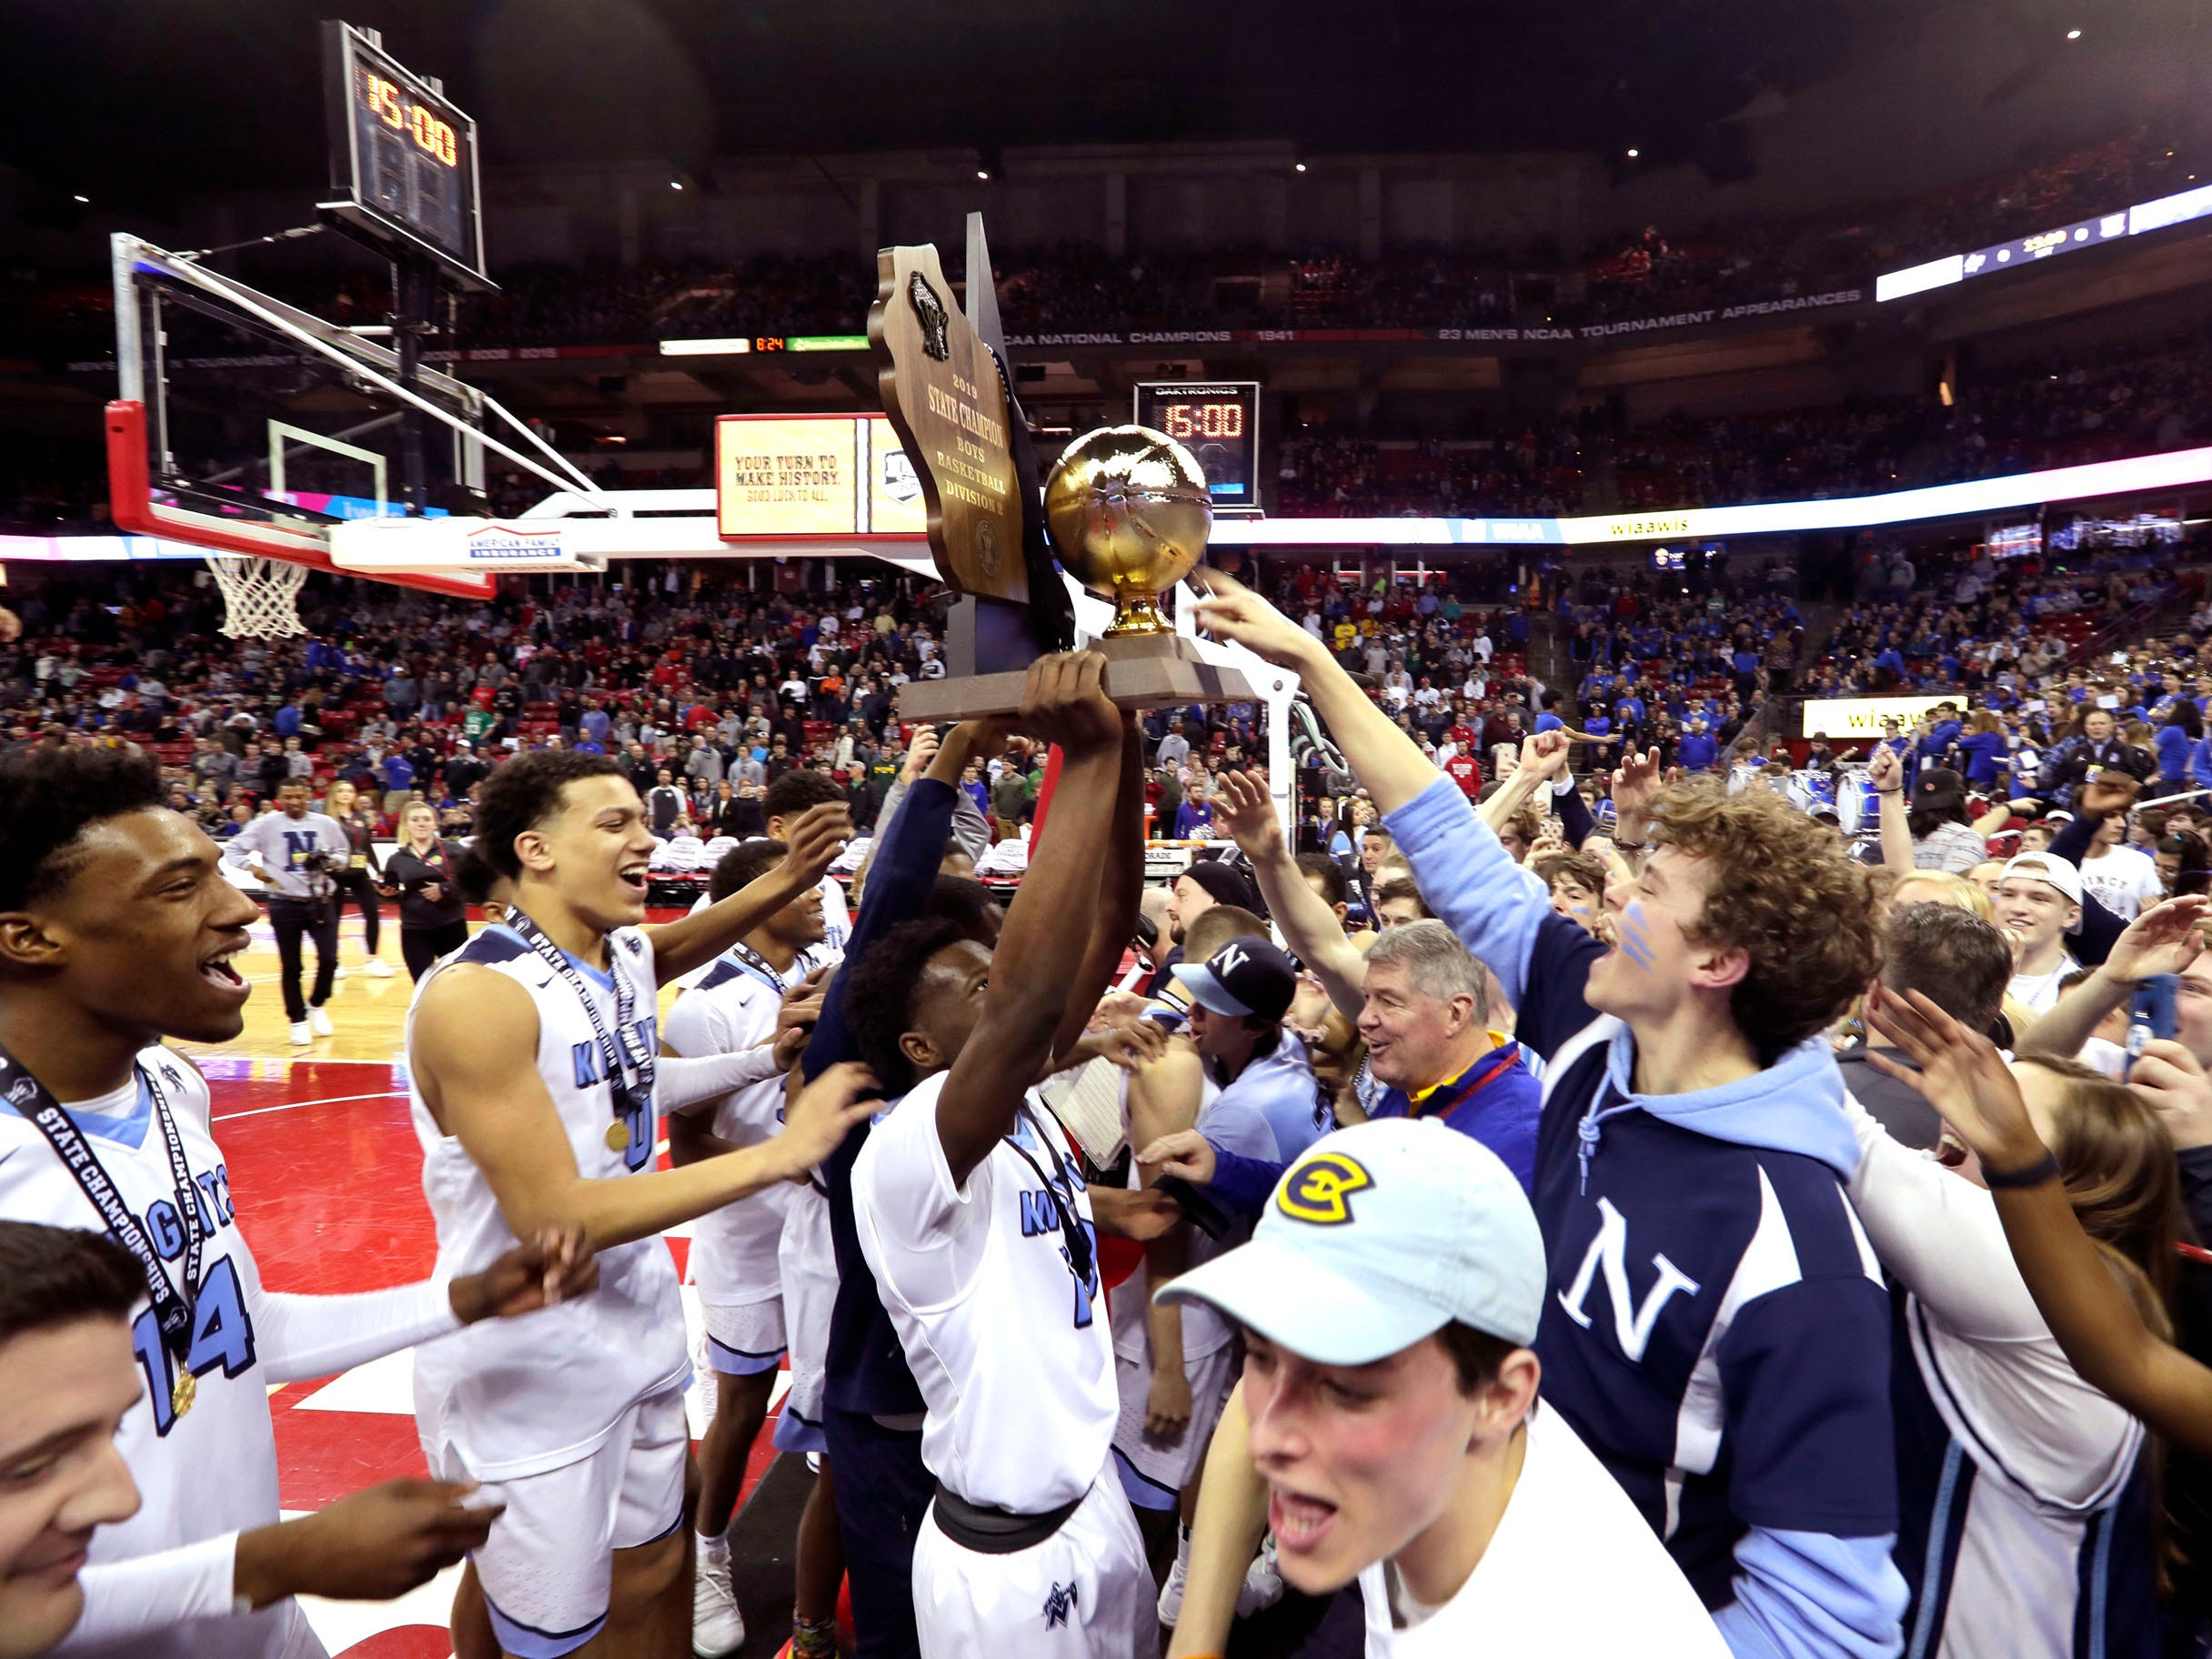 Nicolet players show off their Division 2 championship trophy to their fellow classmates Saturday.